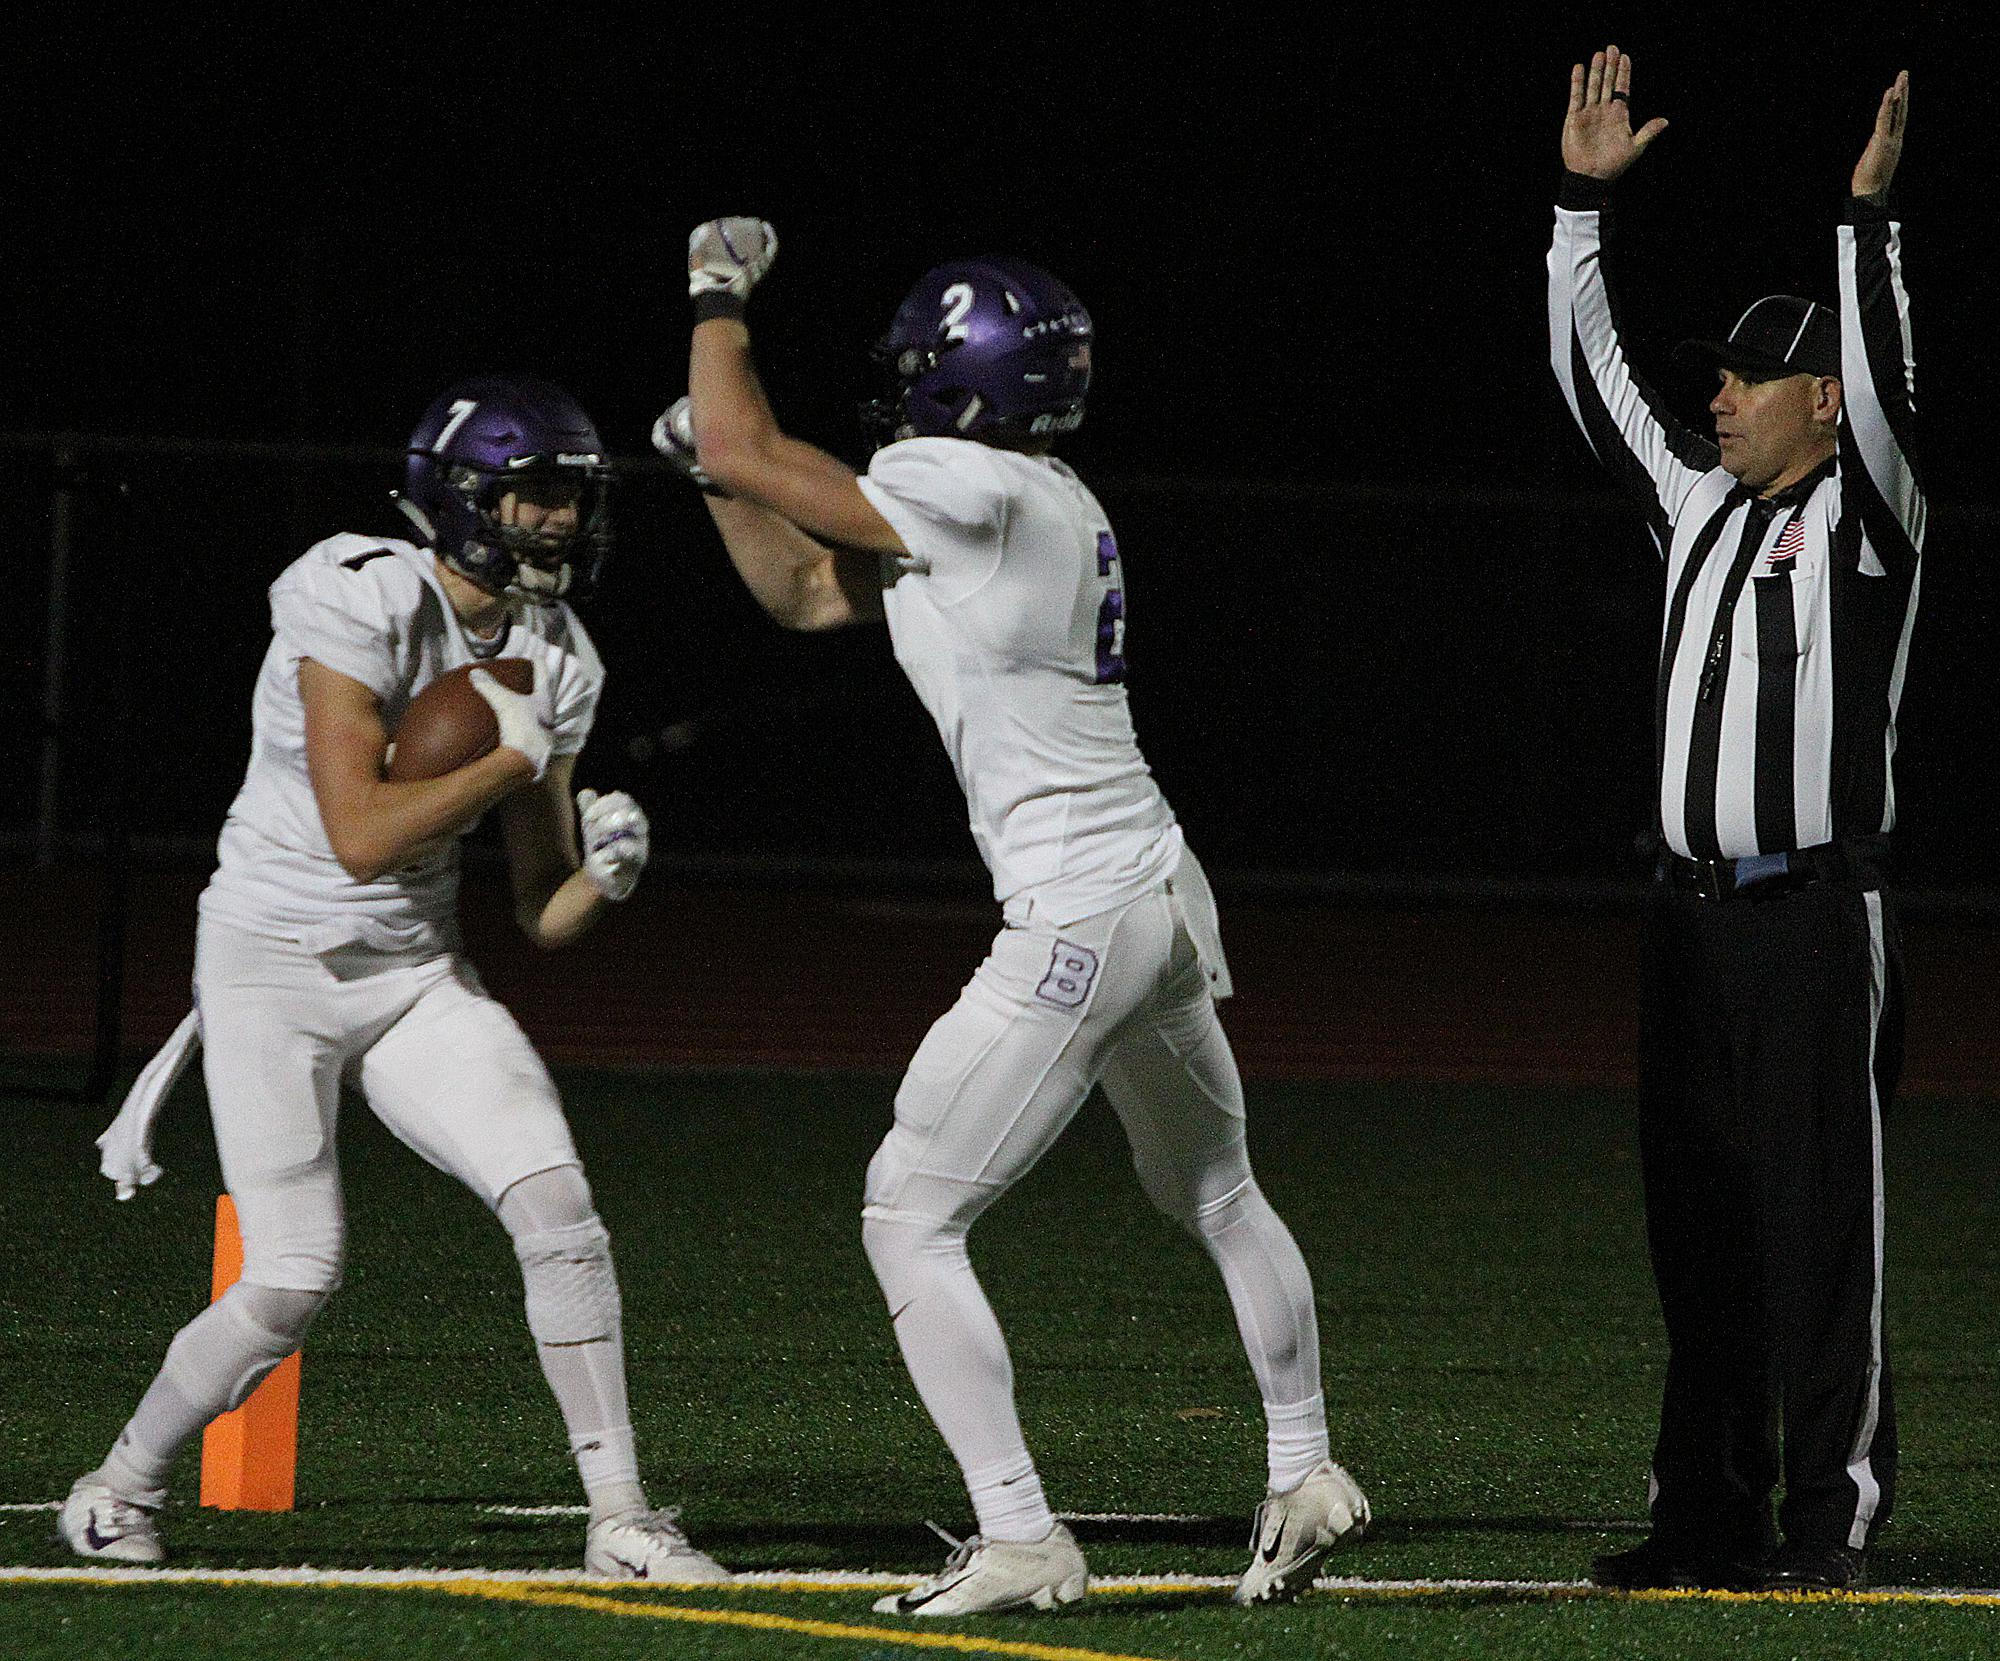 Buffalo celebrates its first touchdown Friday night en route to a 17-14 win over St. Michael-Albertville. Photo by Drew Herron, SportsEngine